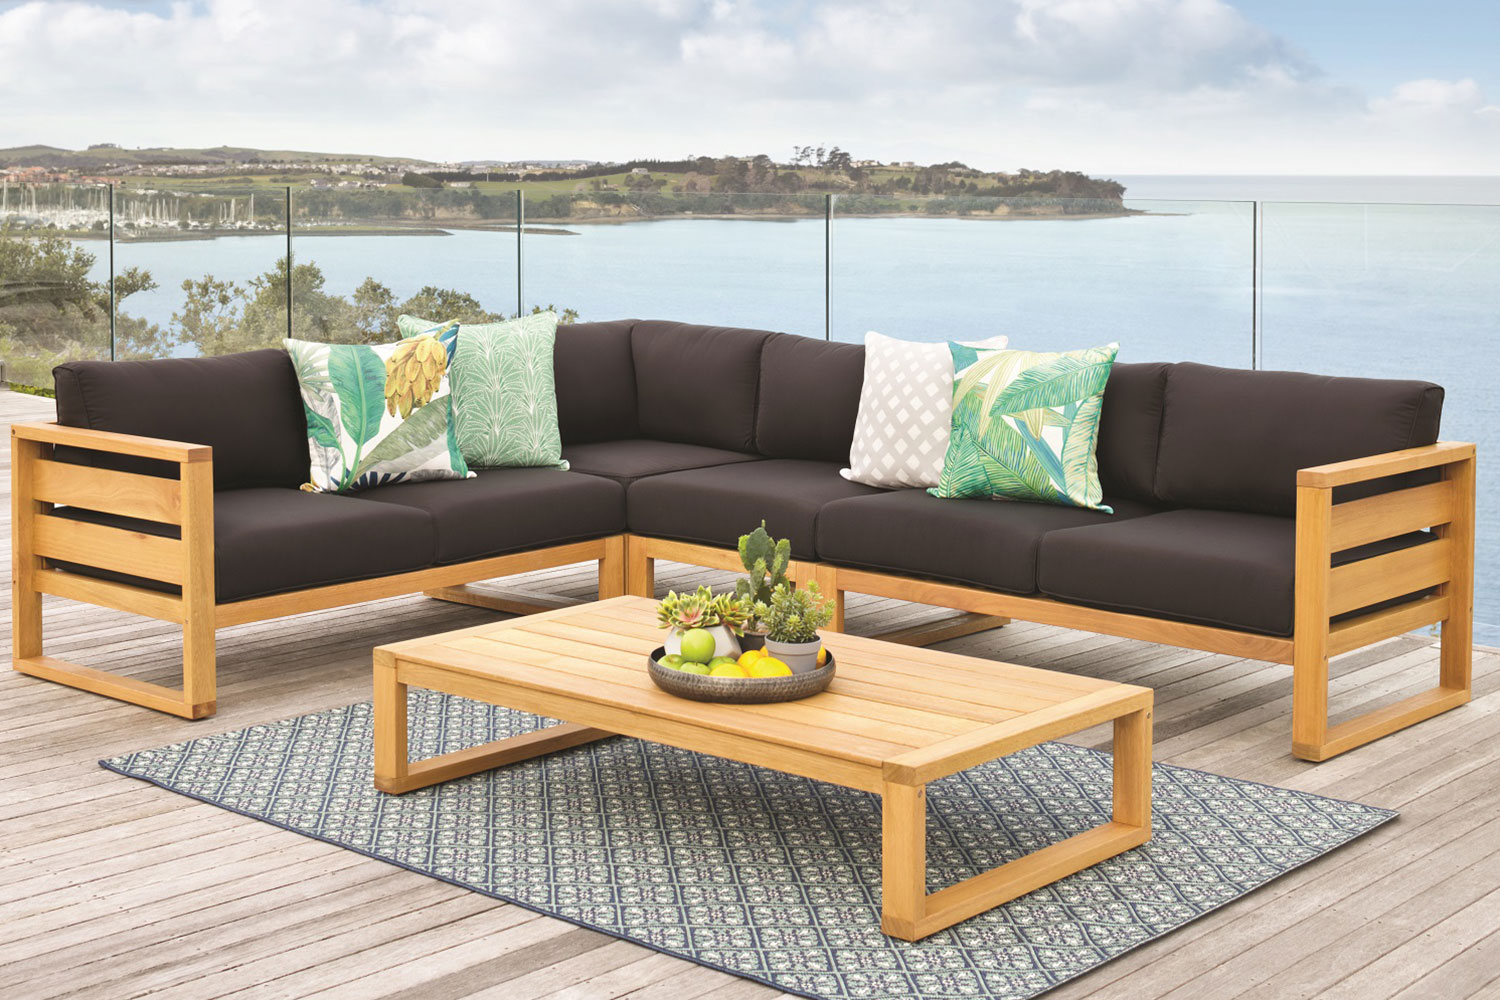 Outdoor Lounge Nz Haven Outdoor Corner Lounge Setting